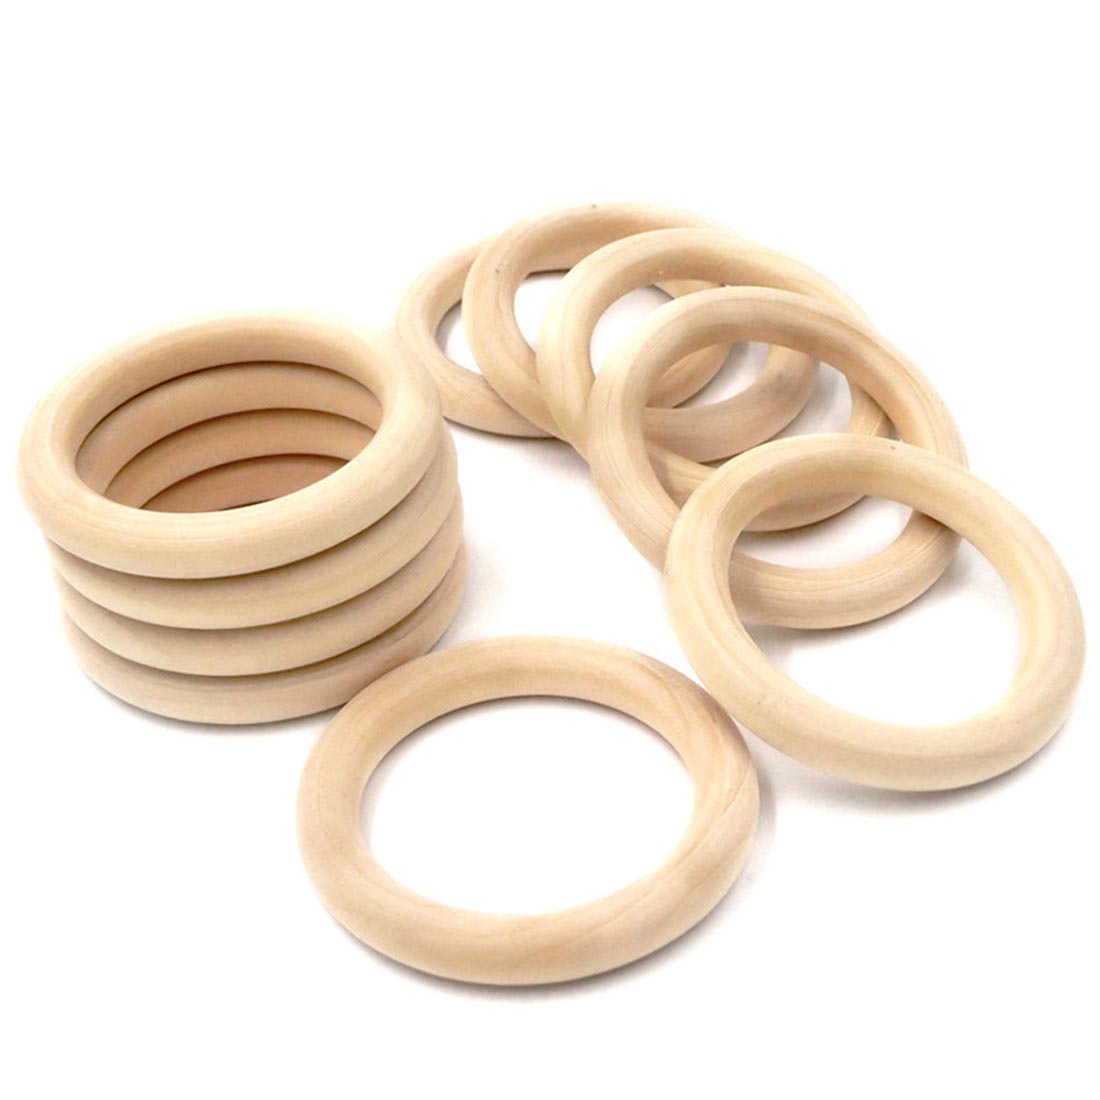 5pcs Baby Wooden Teething Rings 55mm/50mm Fashion Wooden Baby Teethers Natural Safe Necklace Bracelet Making DIY Craft Baby Toys